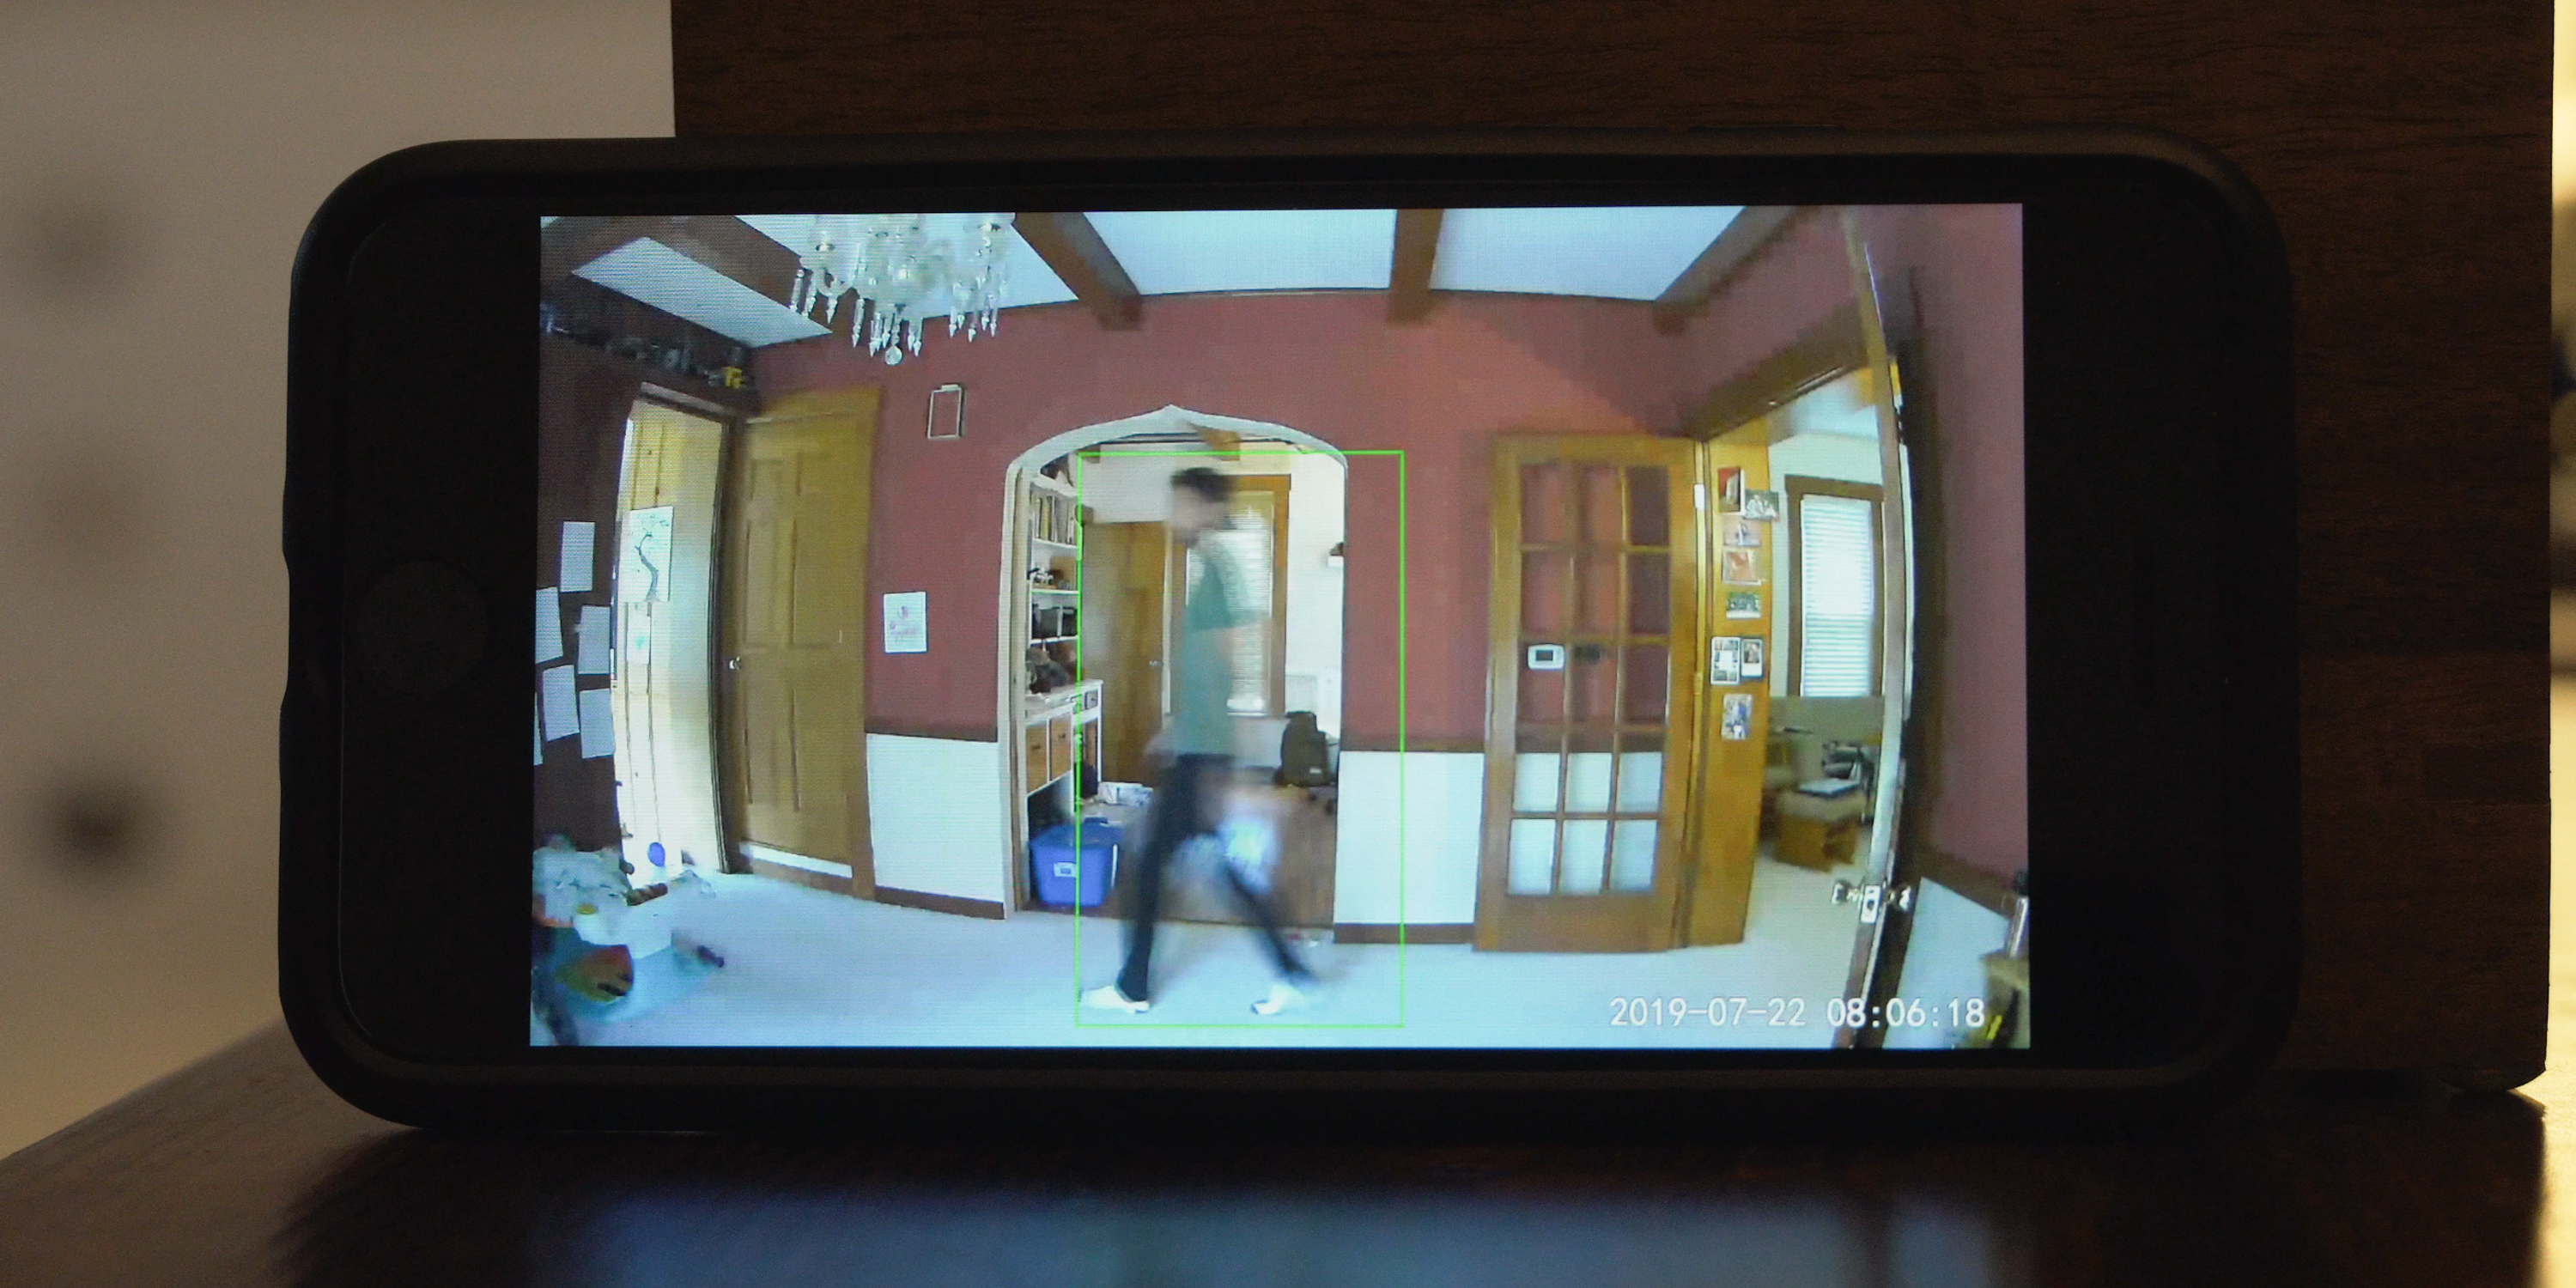 Wyze Cam Pan motion detection